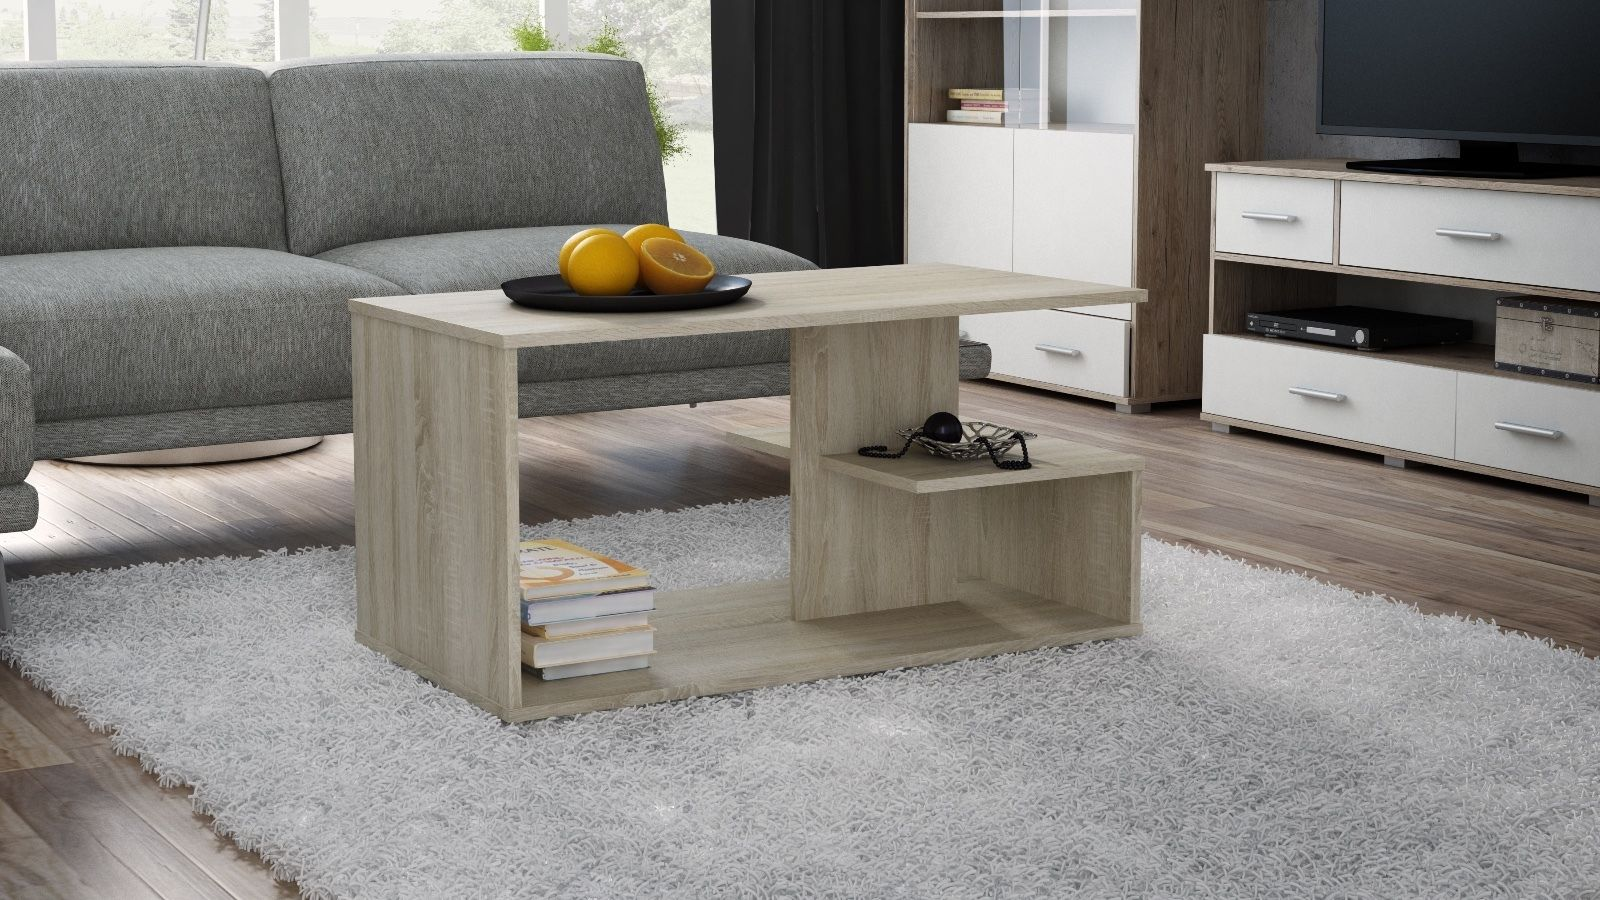 Oak effect coffee table centre piece